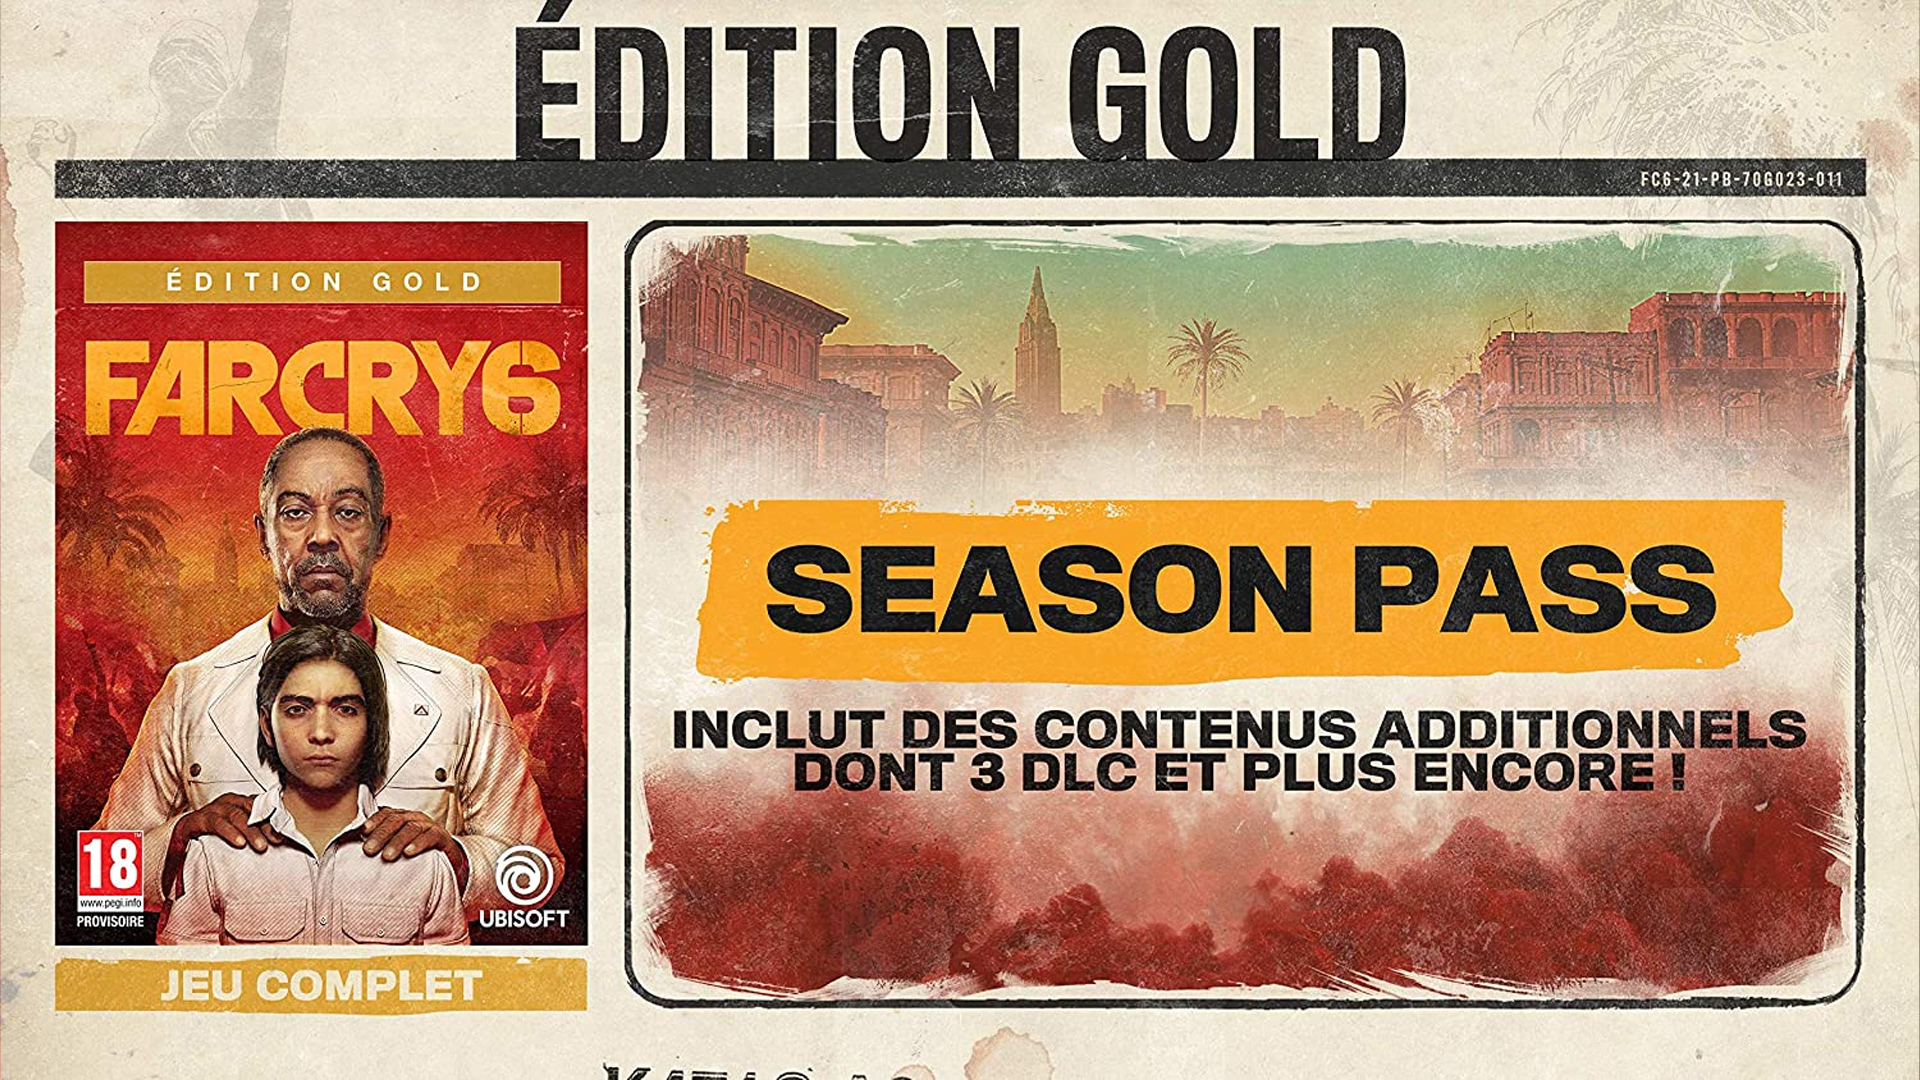 FarCry 6 Edition Gold